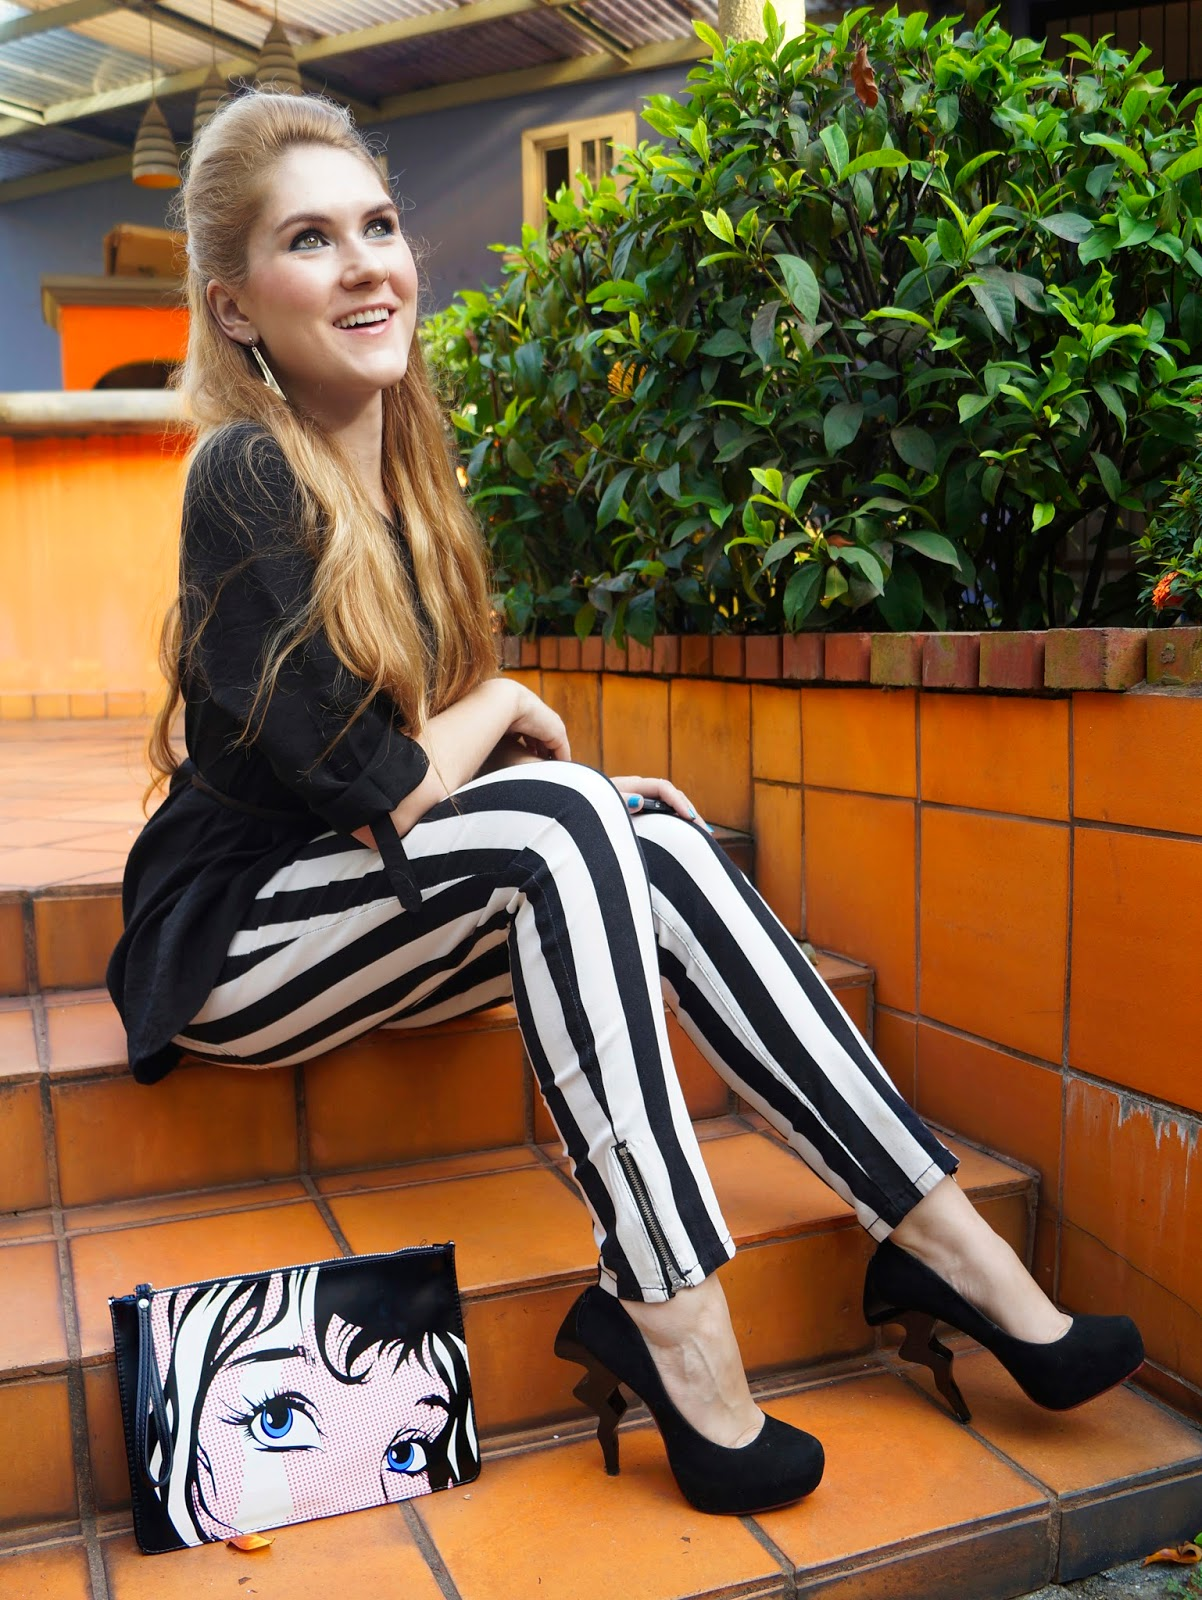 forever21 jeans, asos clutch, striped jeans, modcloth heels, striped pants outfit, easy outfit, fashion blogger, panama fashion, jeans rayas,